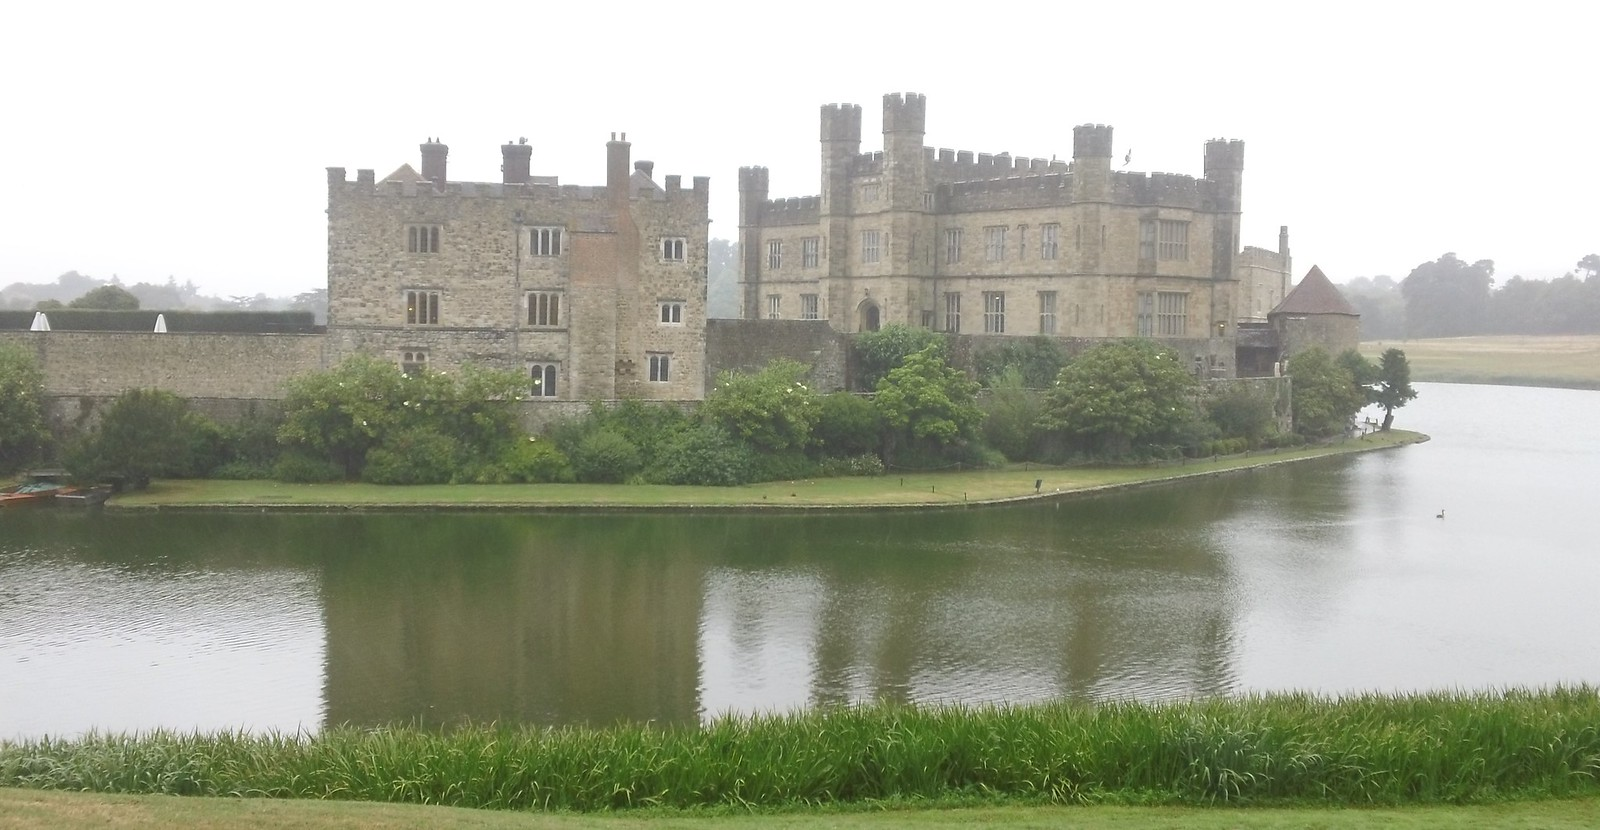 Leeds Castle on a misty, wet day